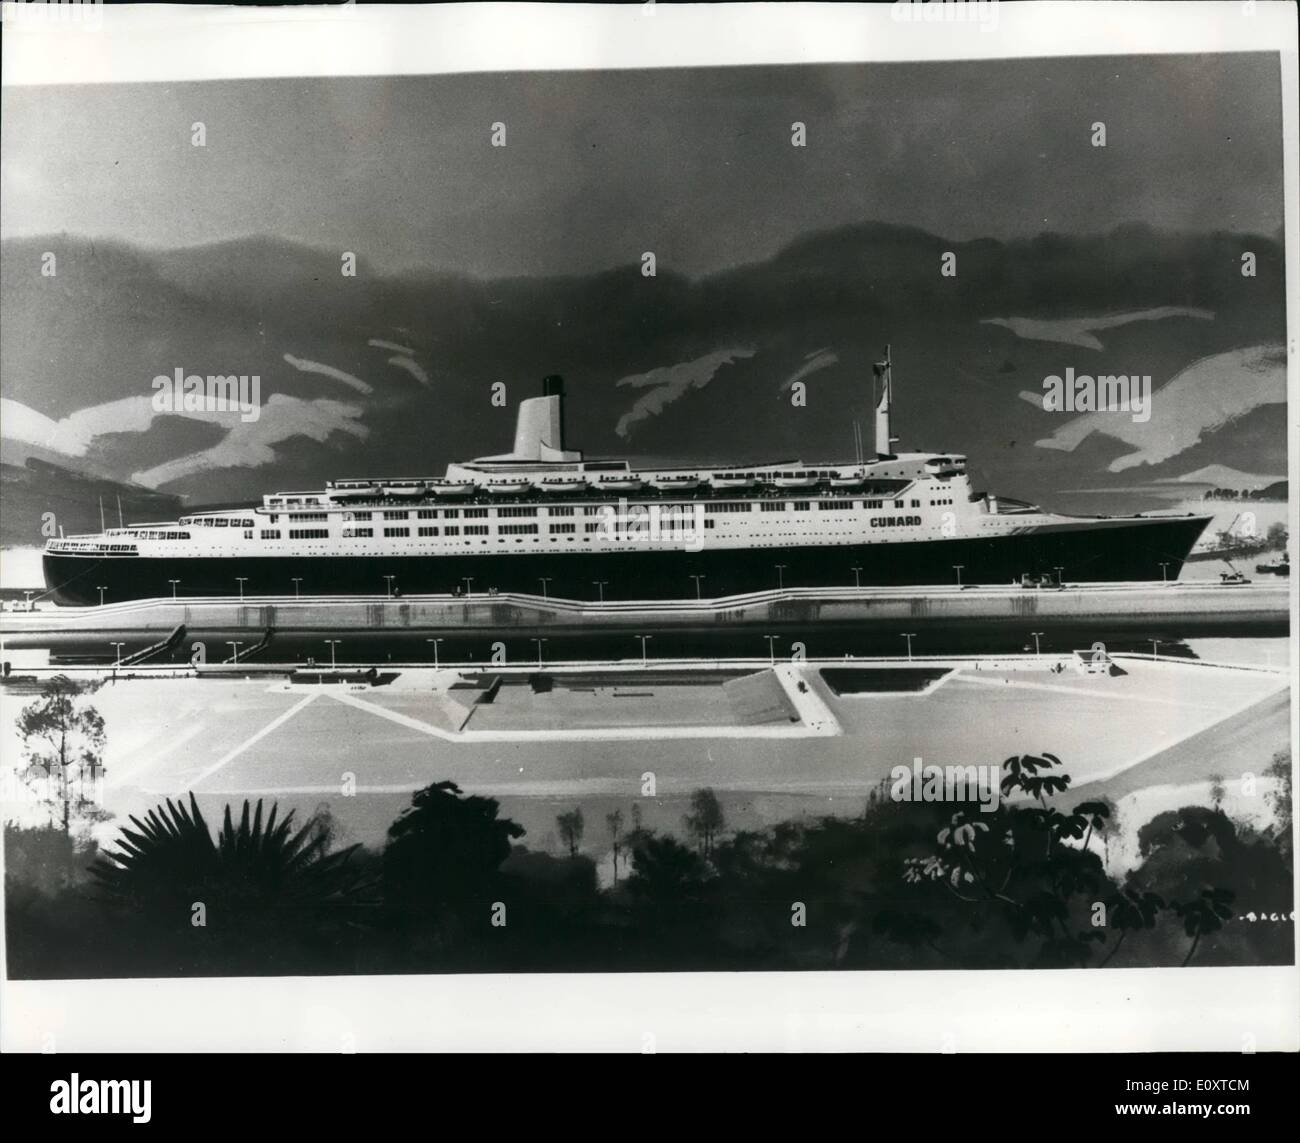 Sep. 09, 1967 - An artist's impression of the new Cunard liner Q-4: Artist Laurence Bagley capture the scene - Stock Image